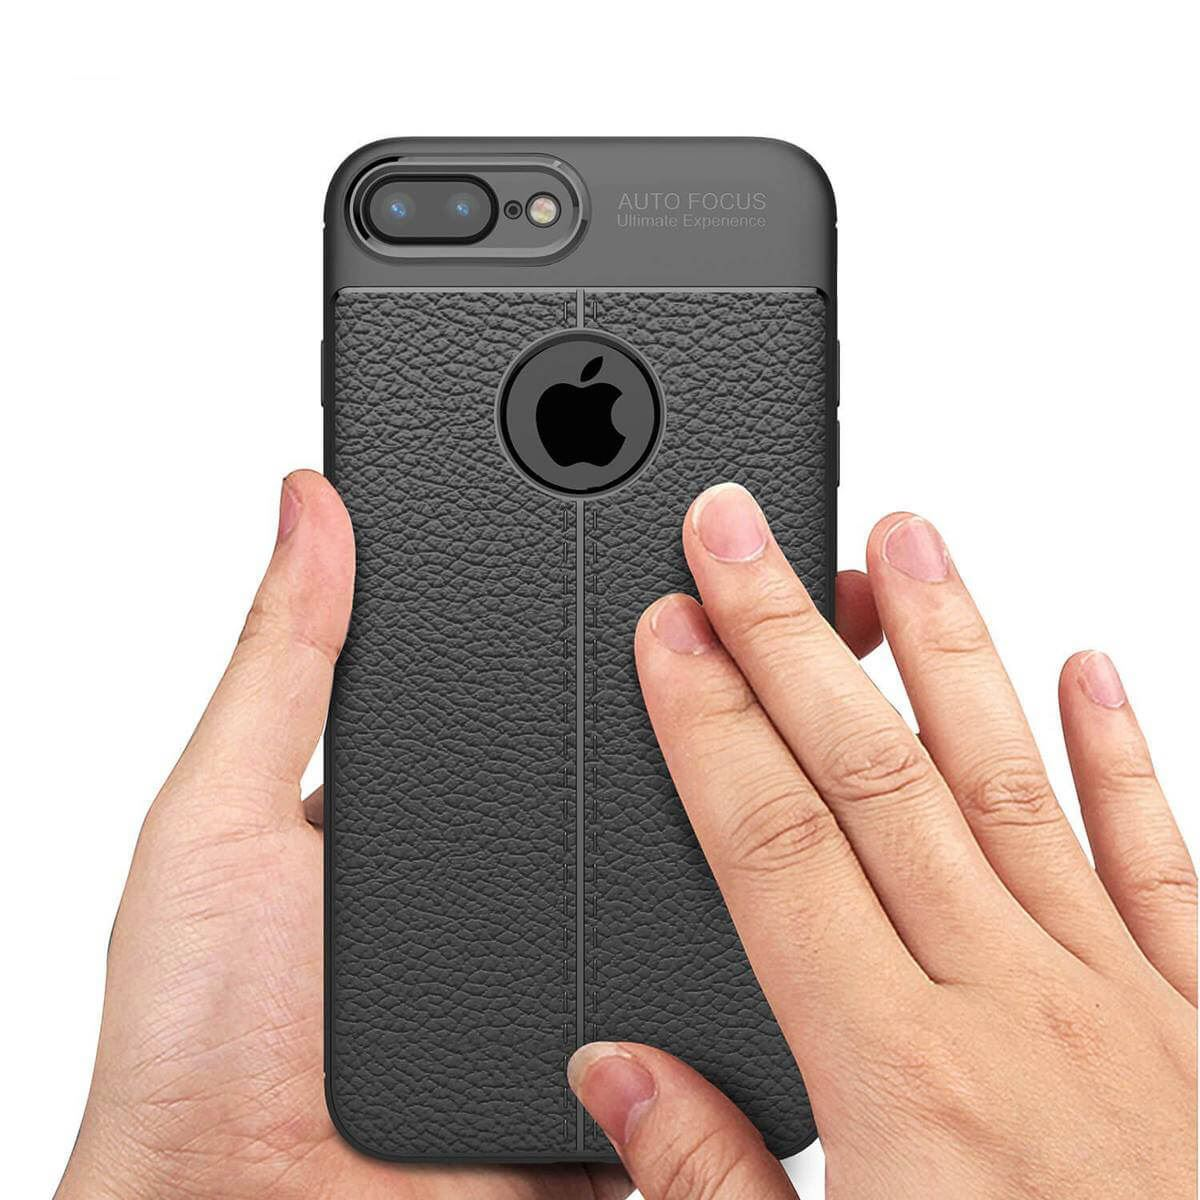 thumbnail 21 - Protective Leather Case For Apple iPhone Luxury Shockproof Pattern Soft TPU